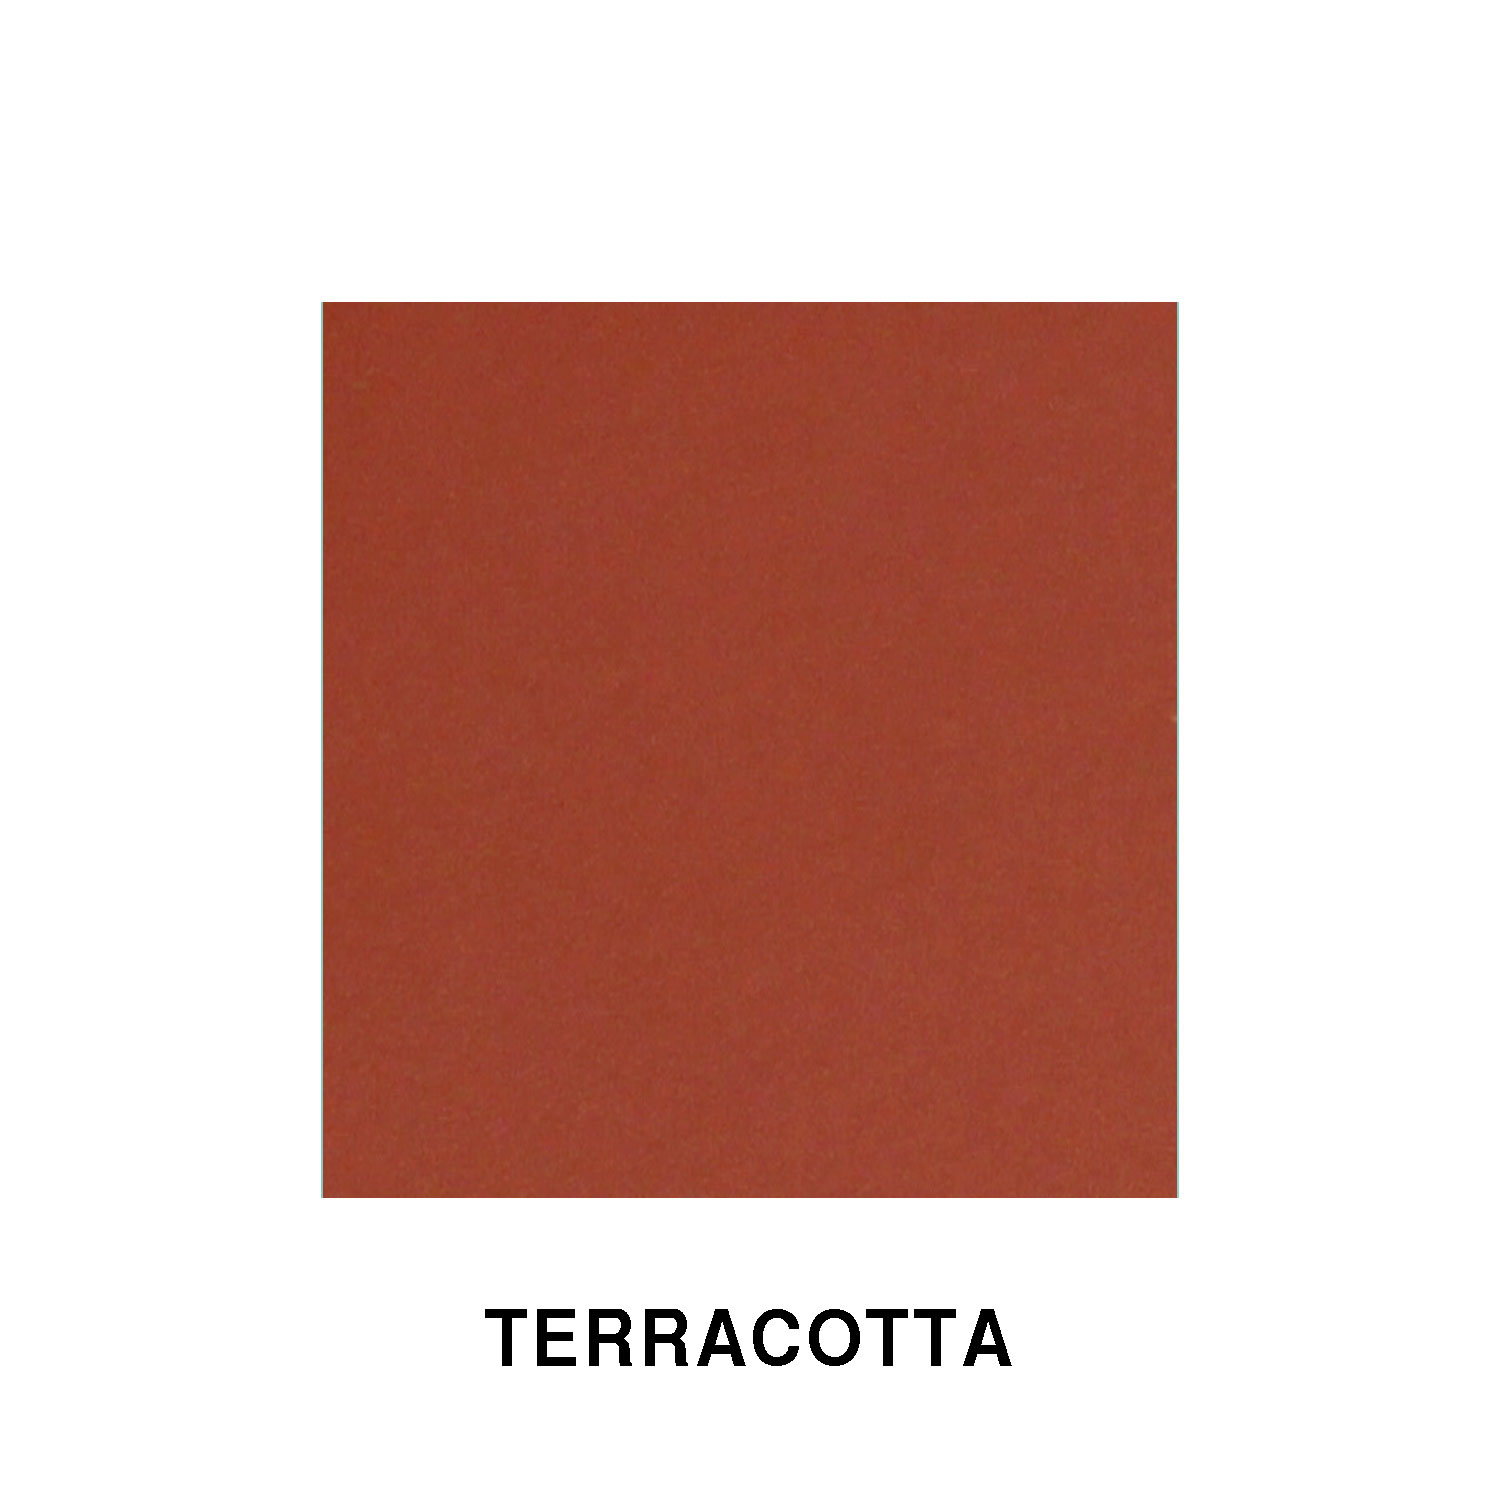 Terracotta Fiberglass Finish